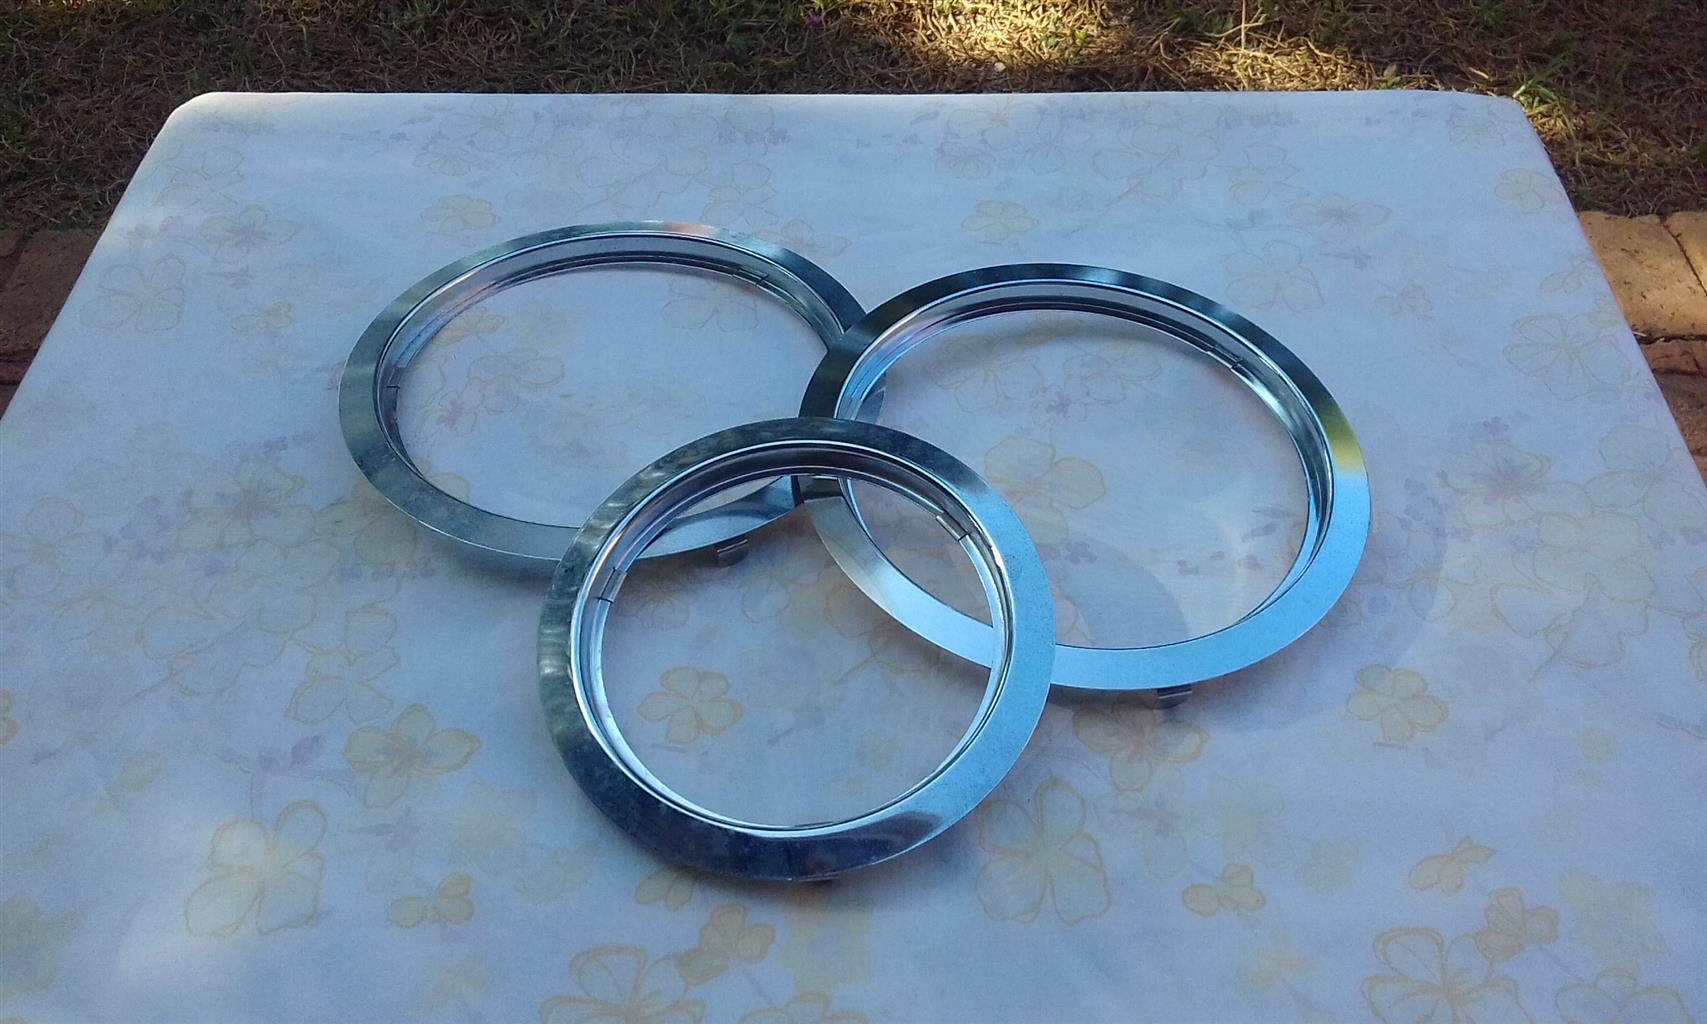 Defy Trim Rings for Sale